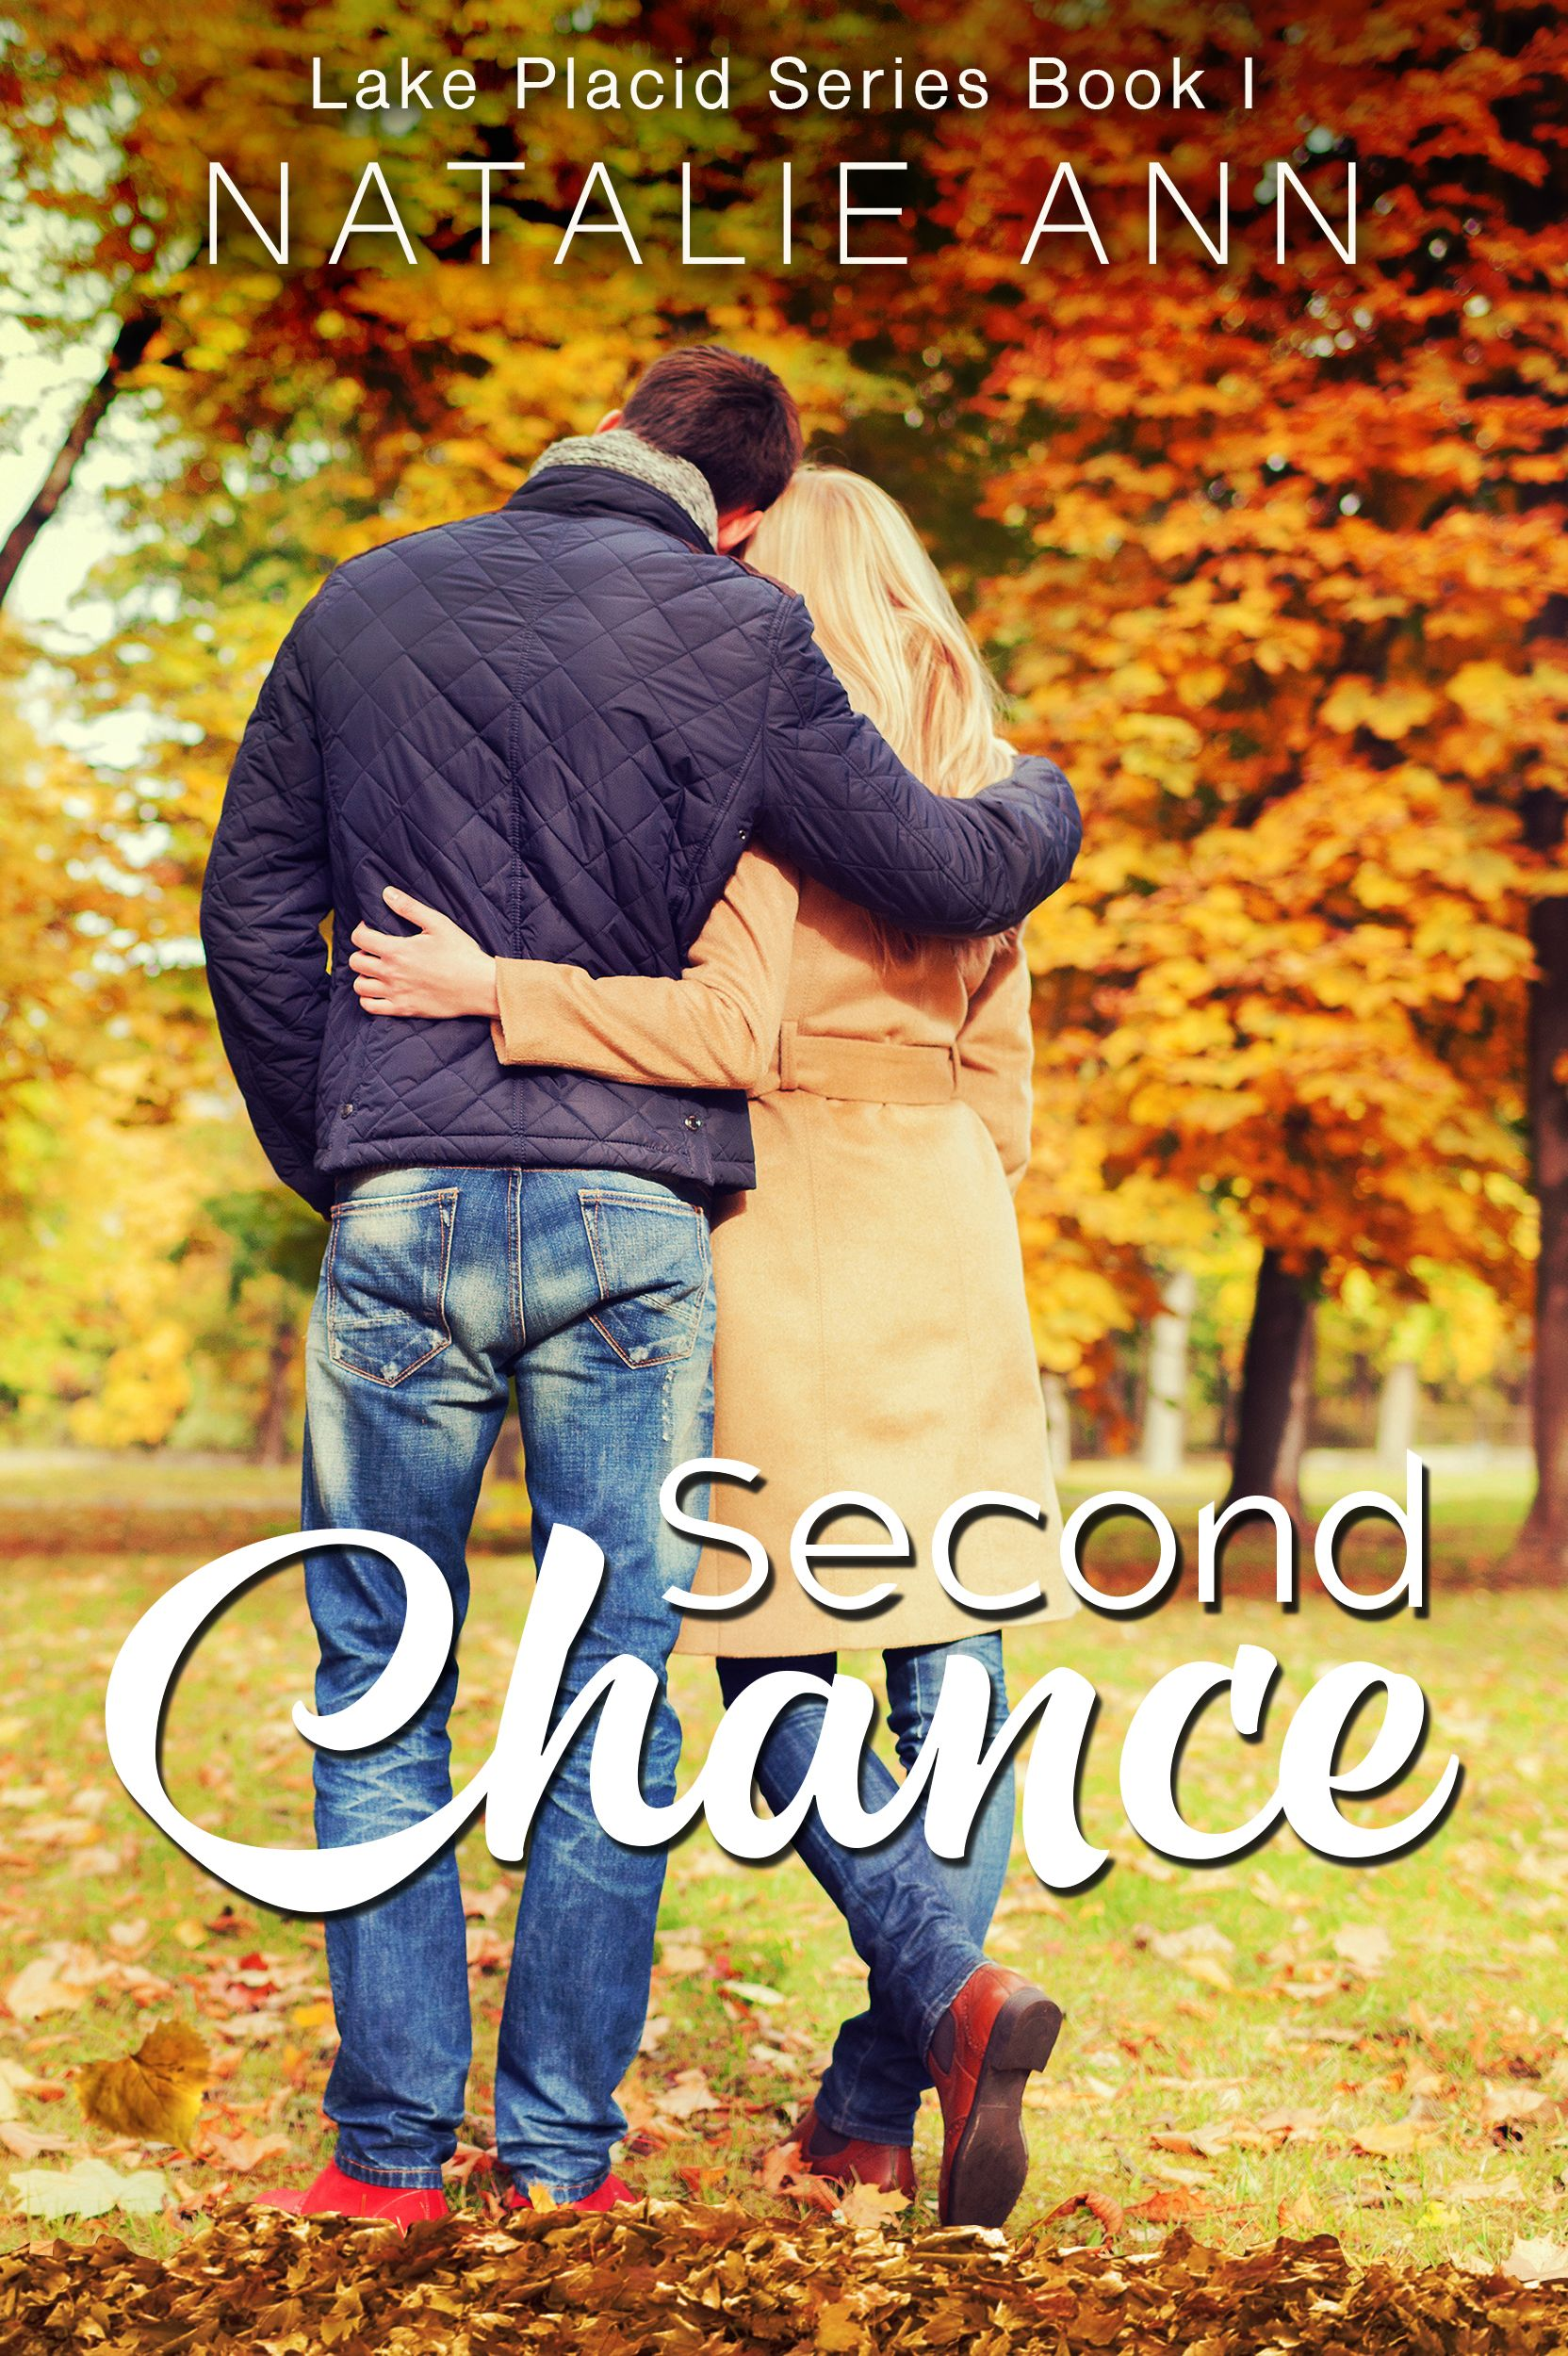 Second chance by natalie ann secret lies and mystery free http ebook deals on second chance by natalie ann free and discounted ebook deals for second chance and other great books fandeluxe Gallery